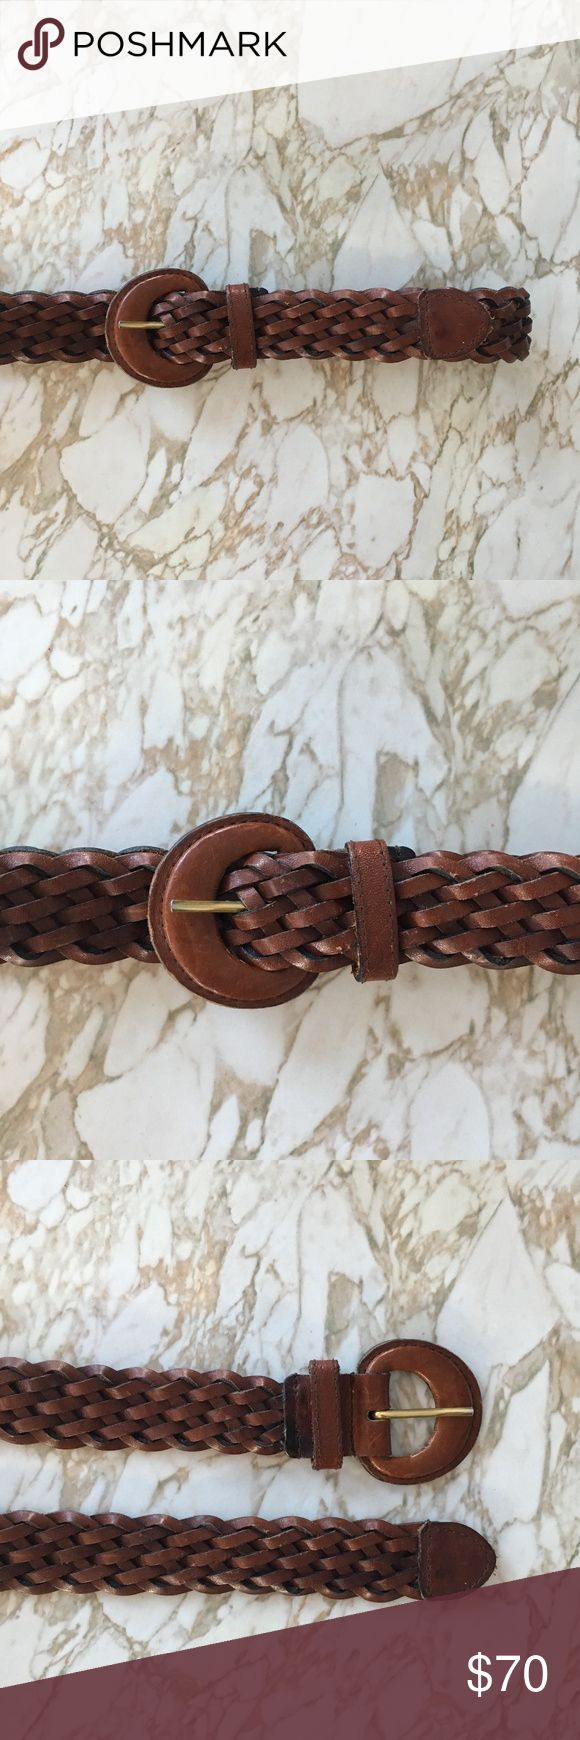 "Madewell Vintage Brown Leather Braided Belt Medium Madewell Vintage Brown Leather Braided Belt. Covered leather circle buckle measures 2.25"". Belt fits size XS to Medium, measures 37"" long, 1.25"" wide. No preset holes, fully adjustable. In perfect vintage condition, purchased at Madewell vintage pop-up shop. No trades; bundle discount available! Madewell Accessories Belts"